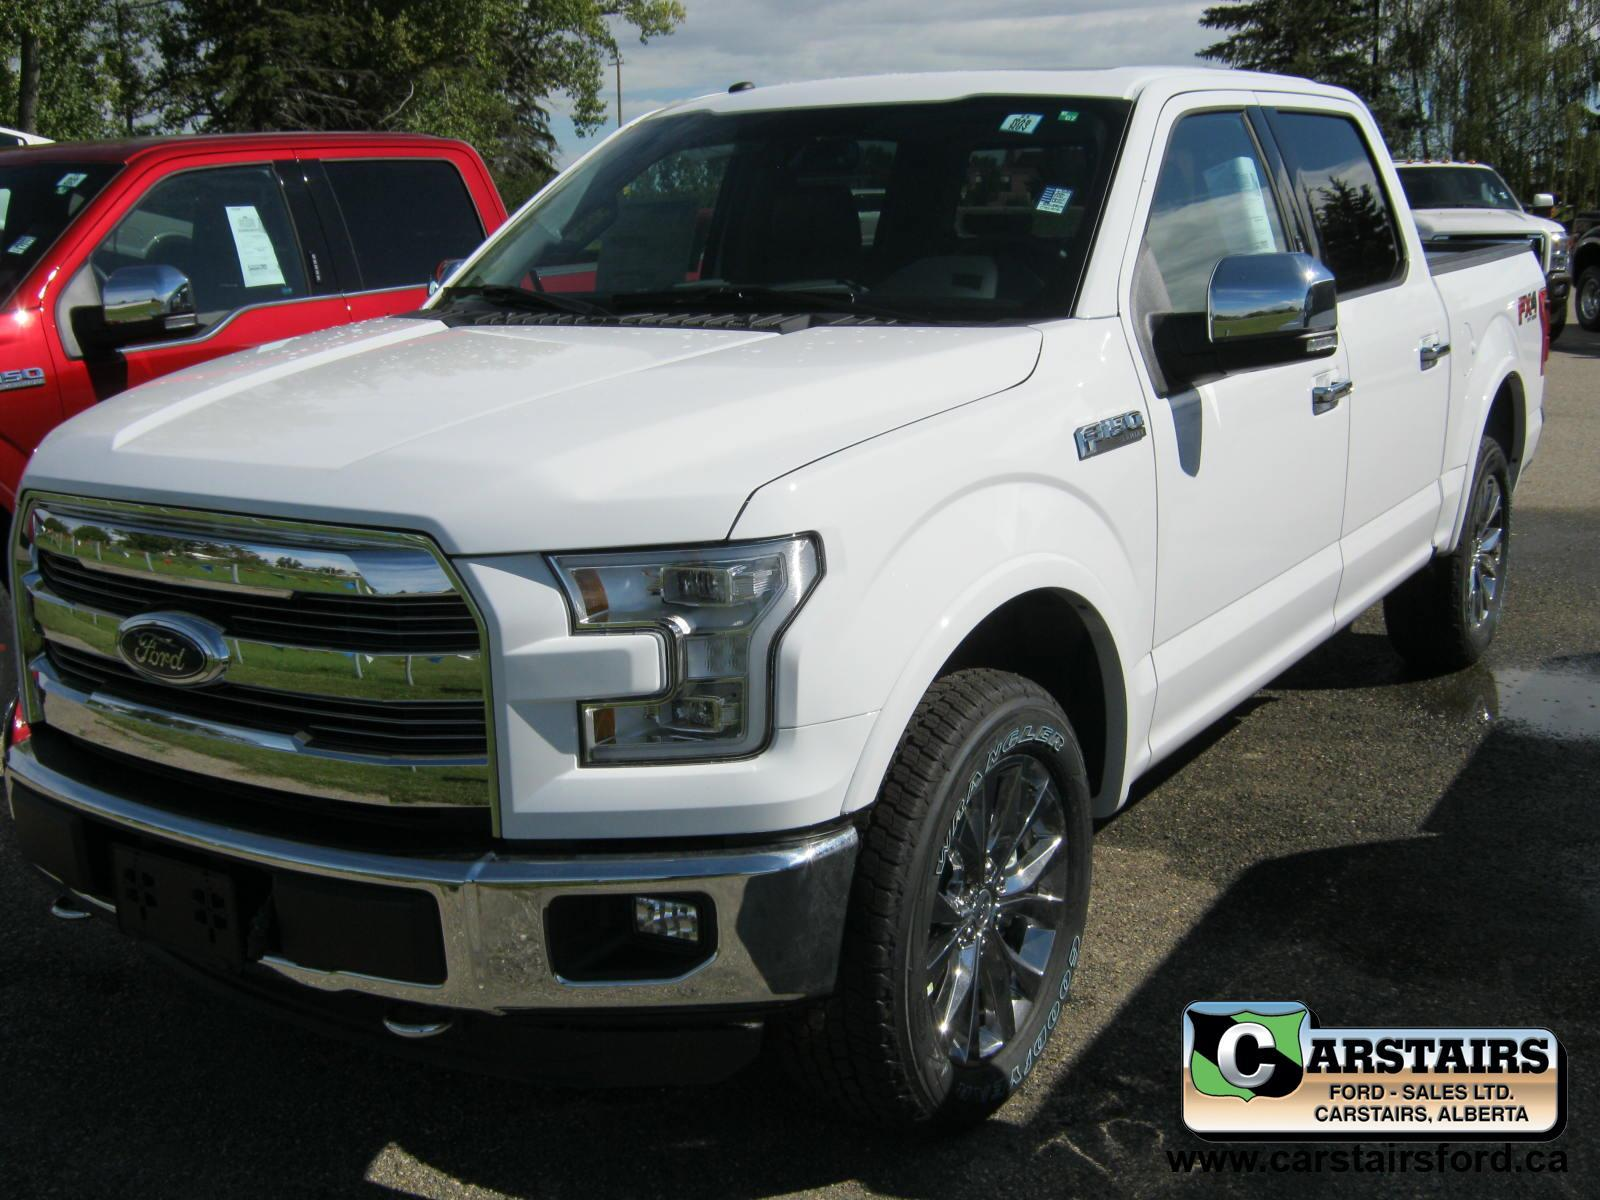 New vehicles carstairs carstairs ford sales ltd 2016 ford f 150 lariat 145 sciox Choice Image